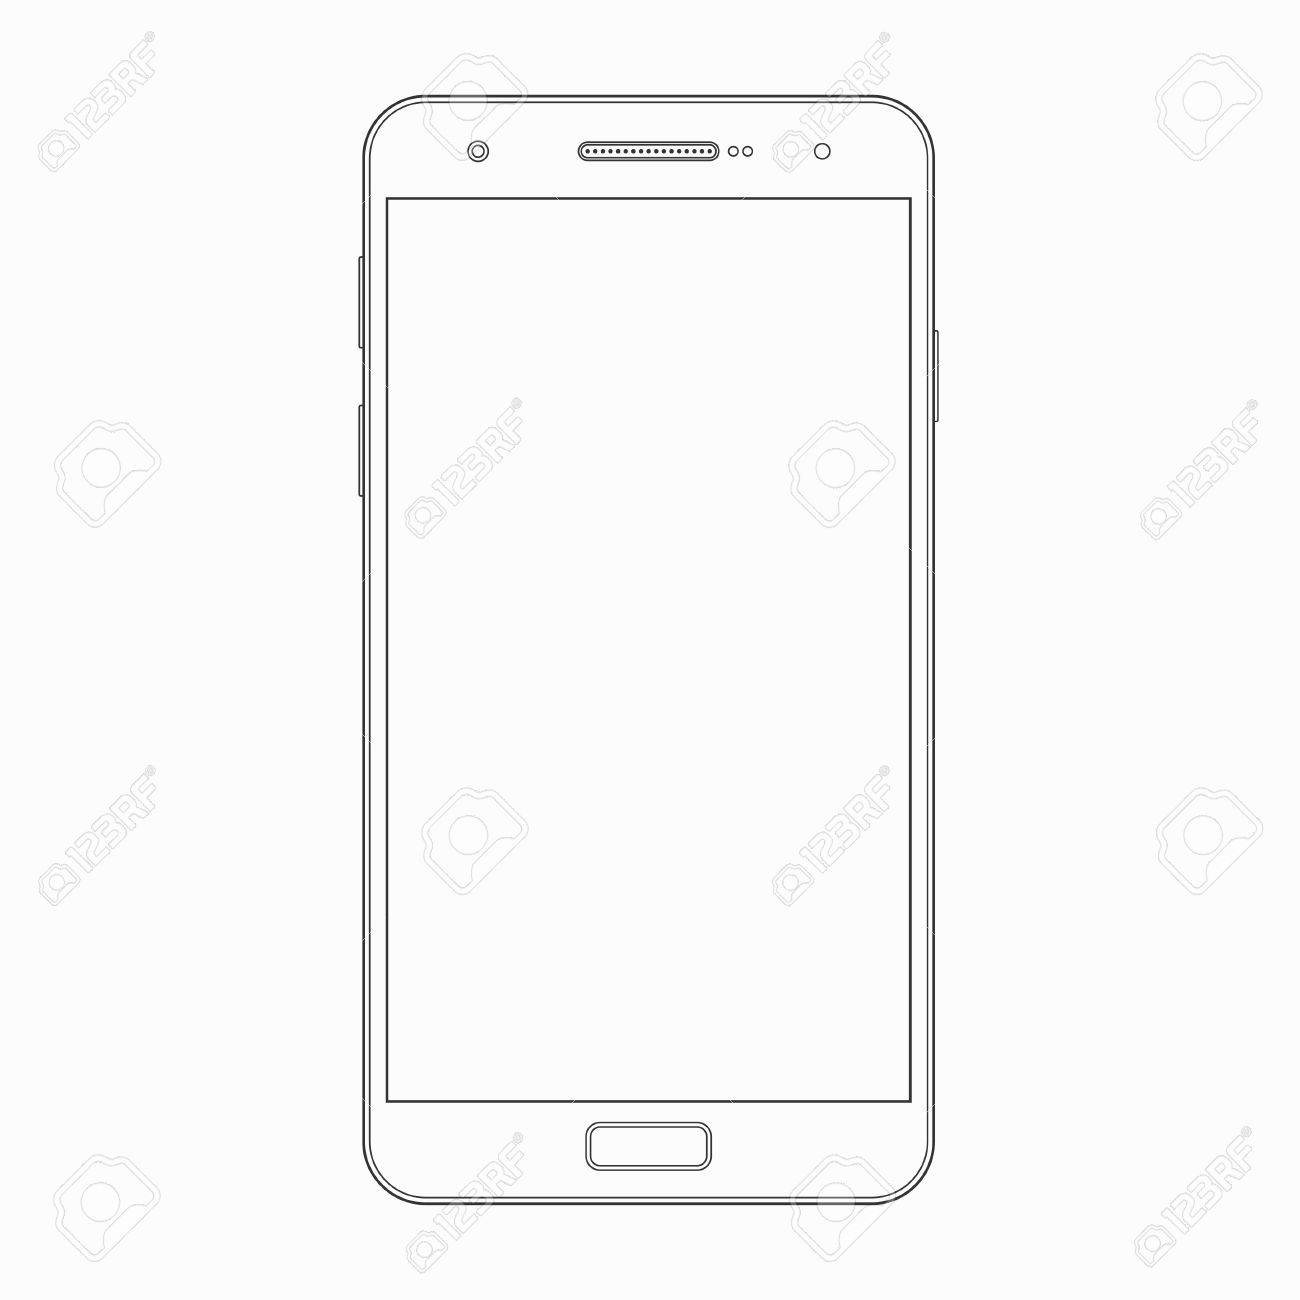 Smartphone Outline Template Vector Wireframe Contour Of Modern